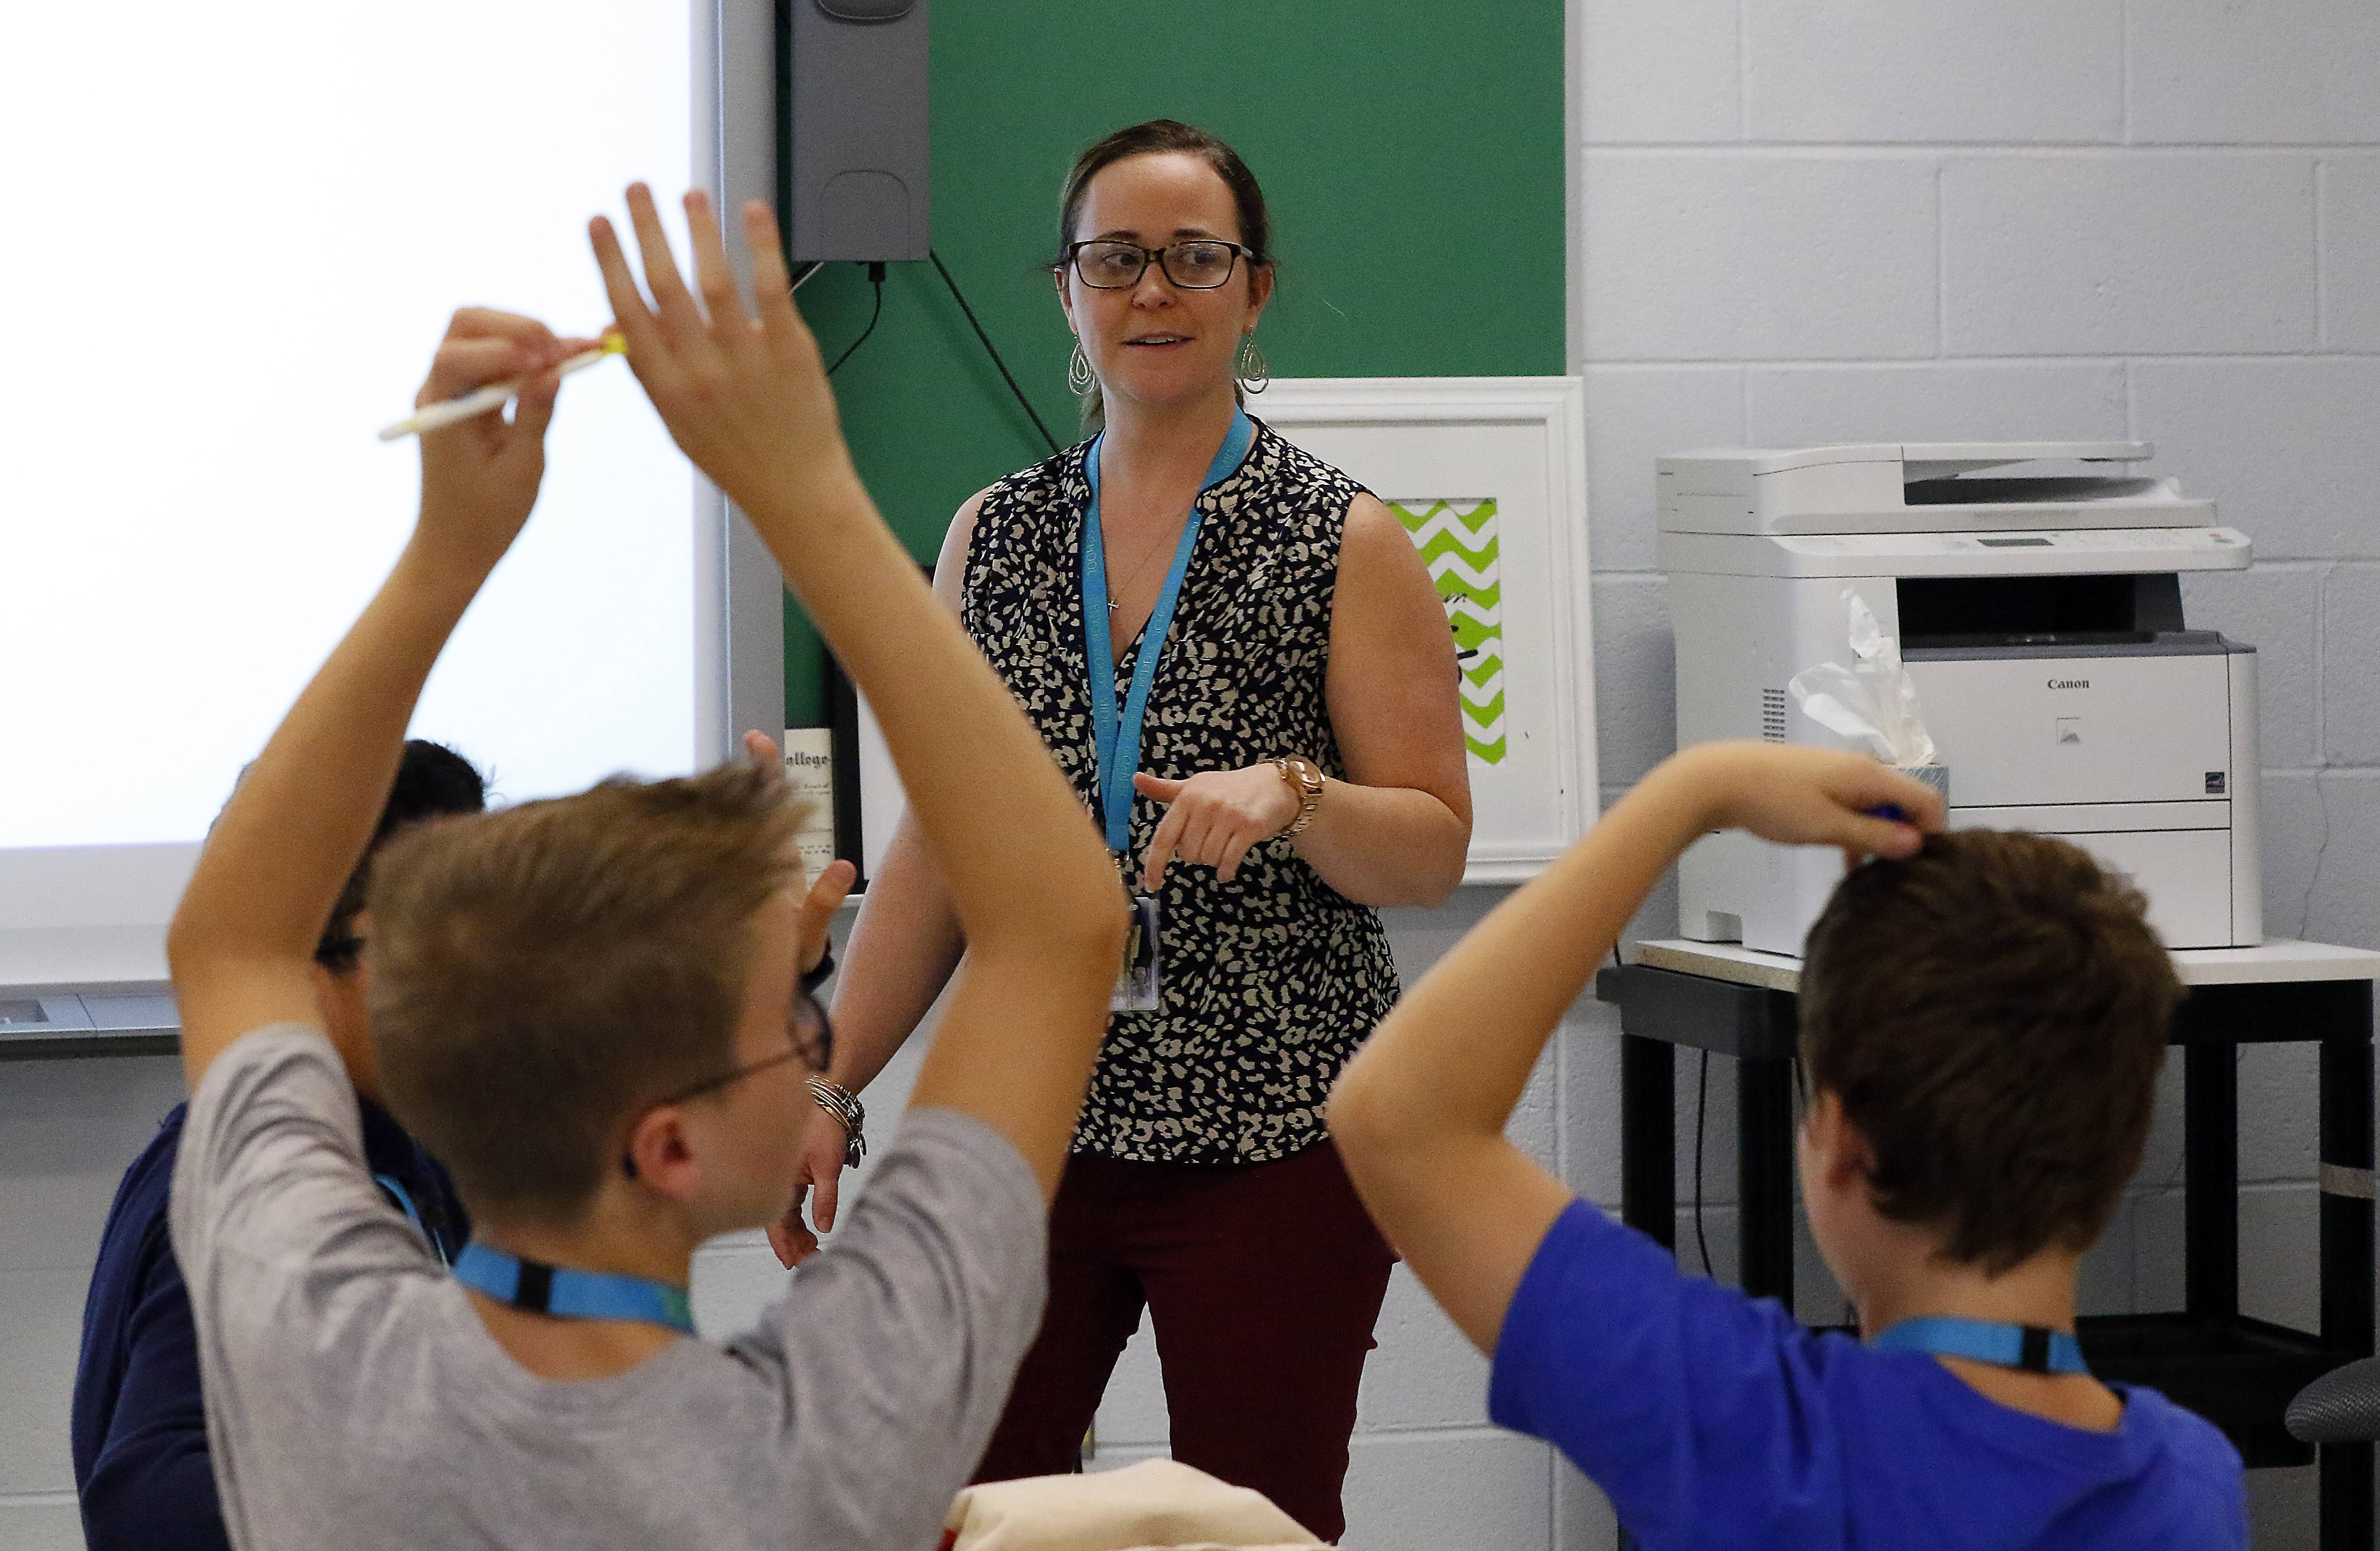 Math teacher Megan Cammack, who teaches seventh-graders at Kenyon Woods Middle School in South Elgin, employs a flip classroom method with students watching YouTube videos of her lessons beforehand and then explaining what they learned during class.